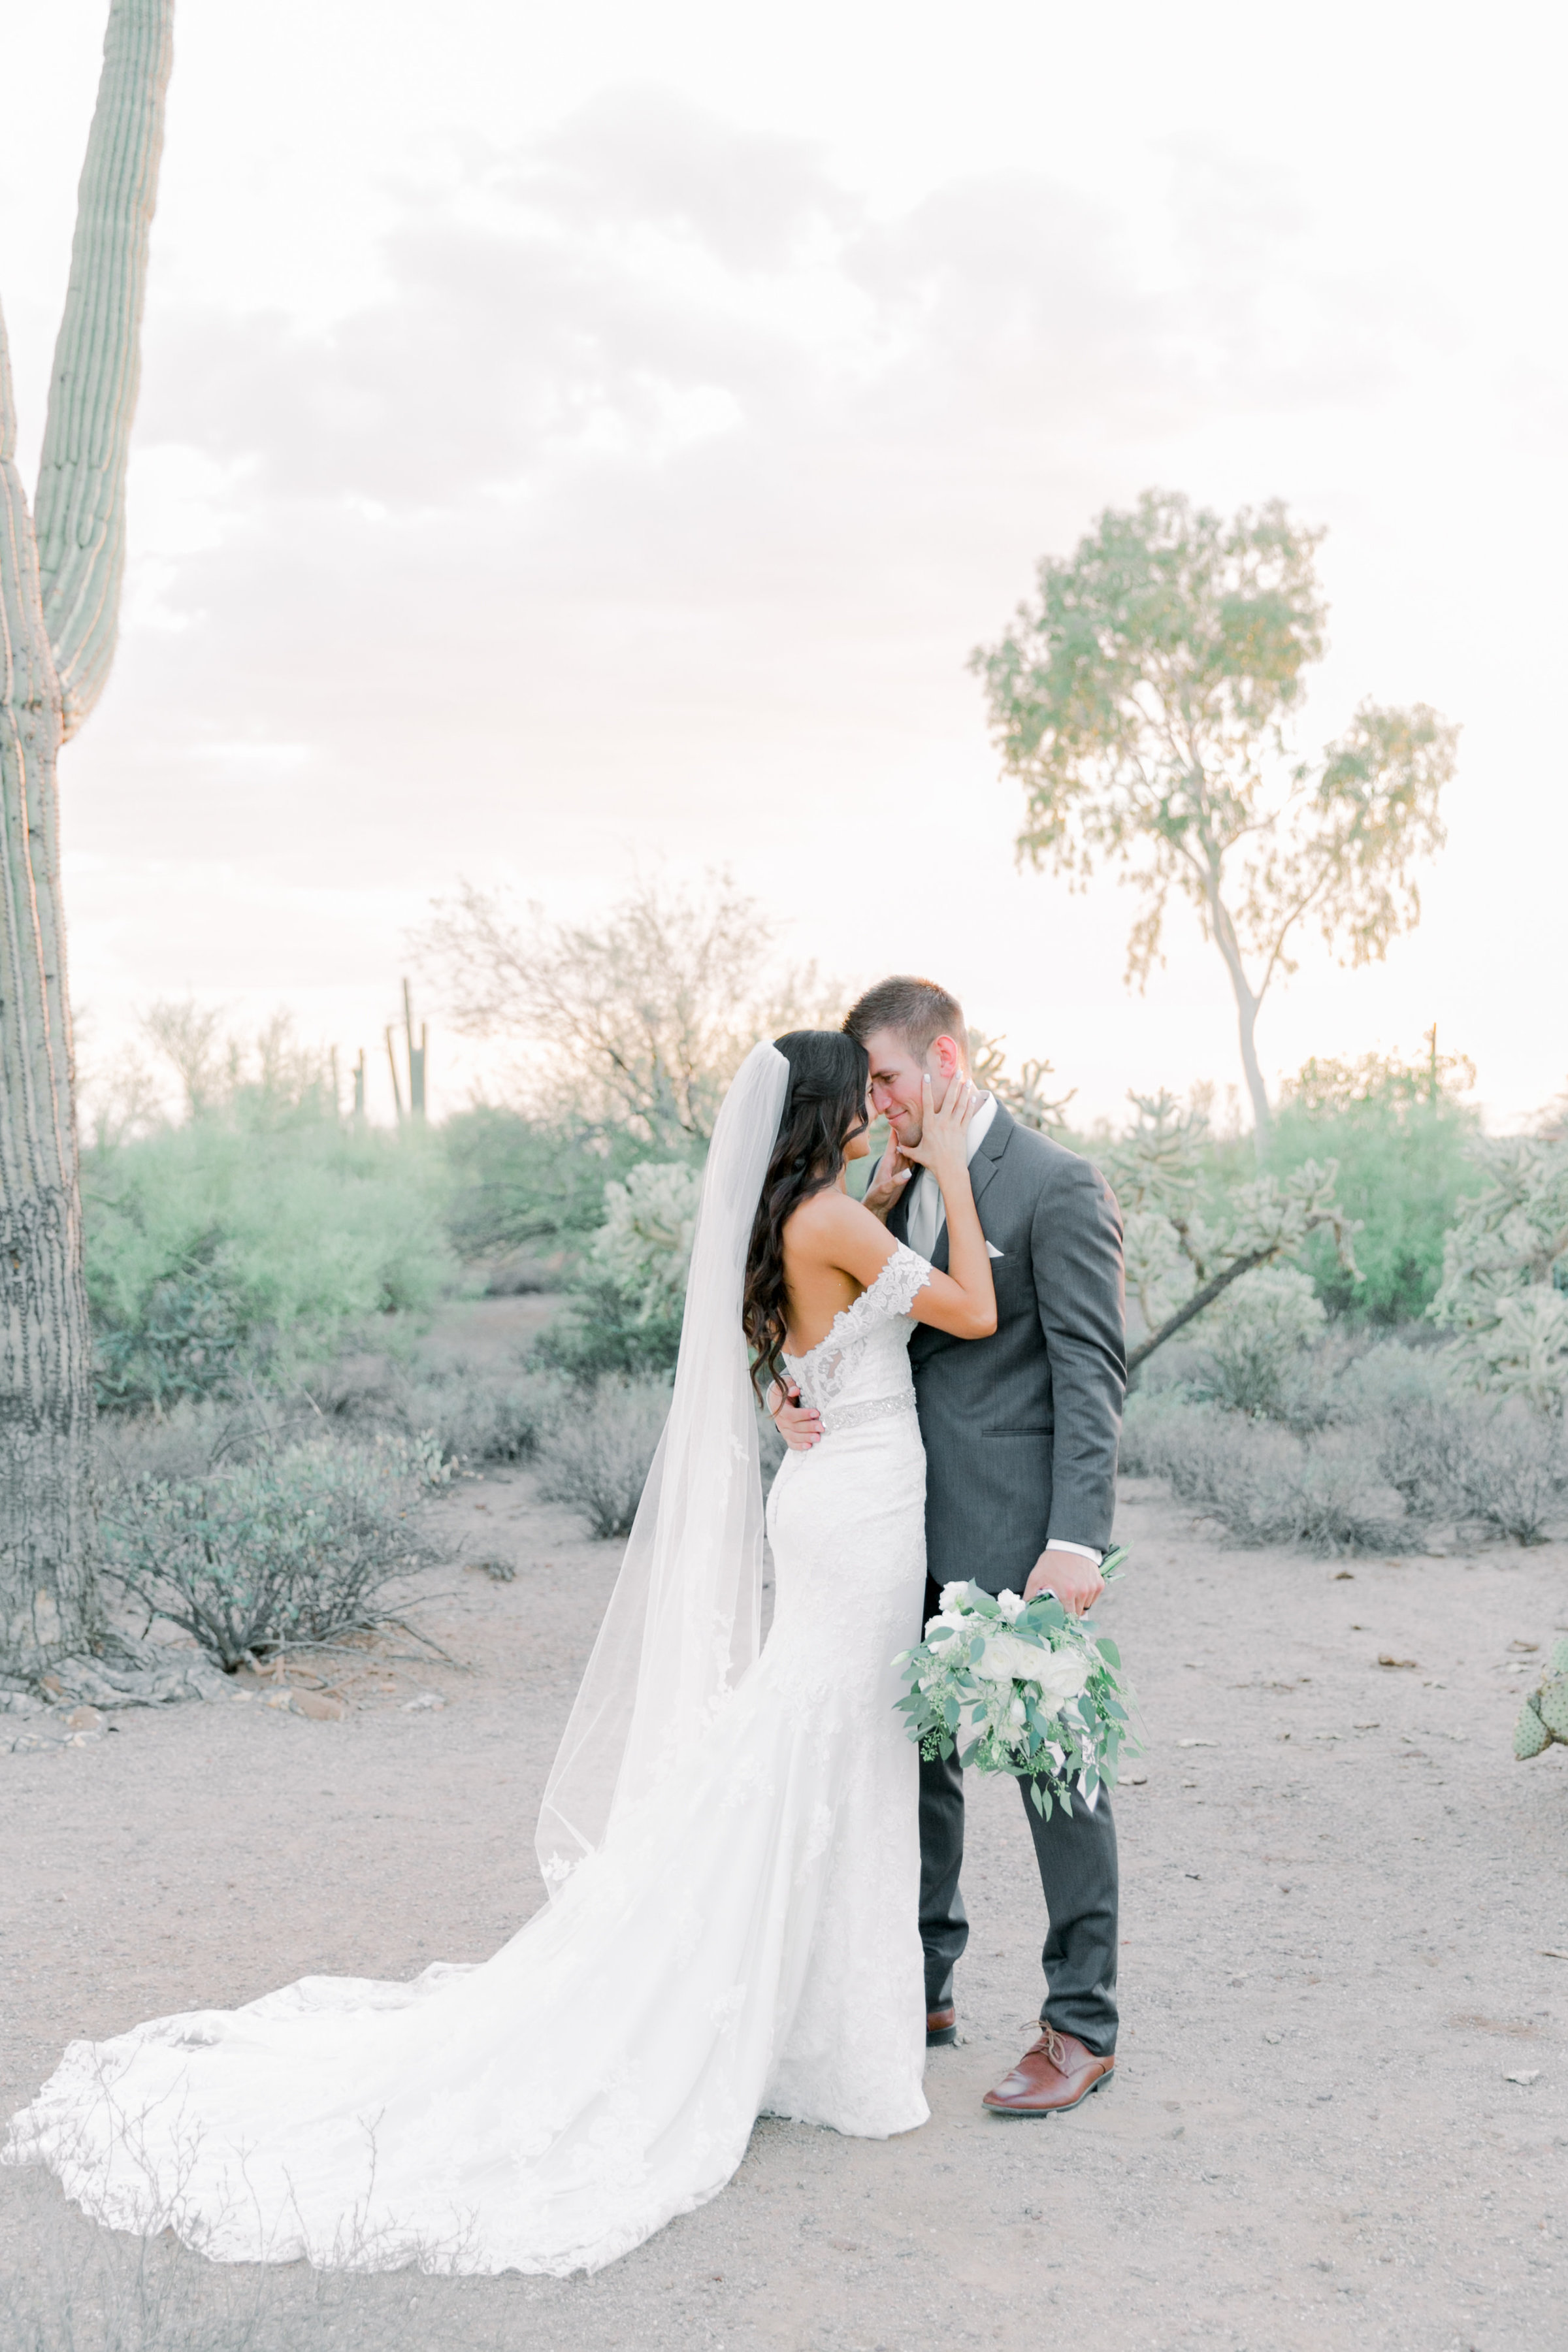 Karlie Colleen Photography - Arizona Wedding - The Paseo Venue - Jackie & Ryan -637